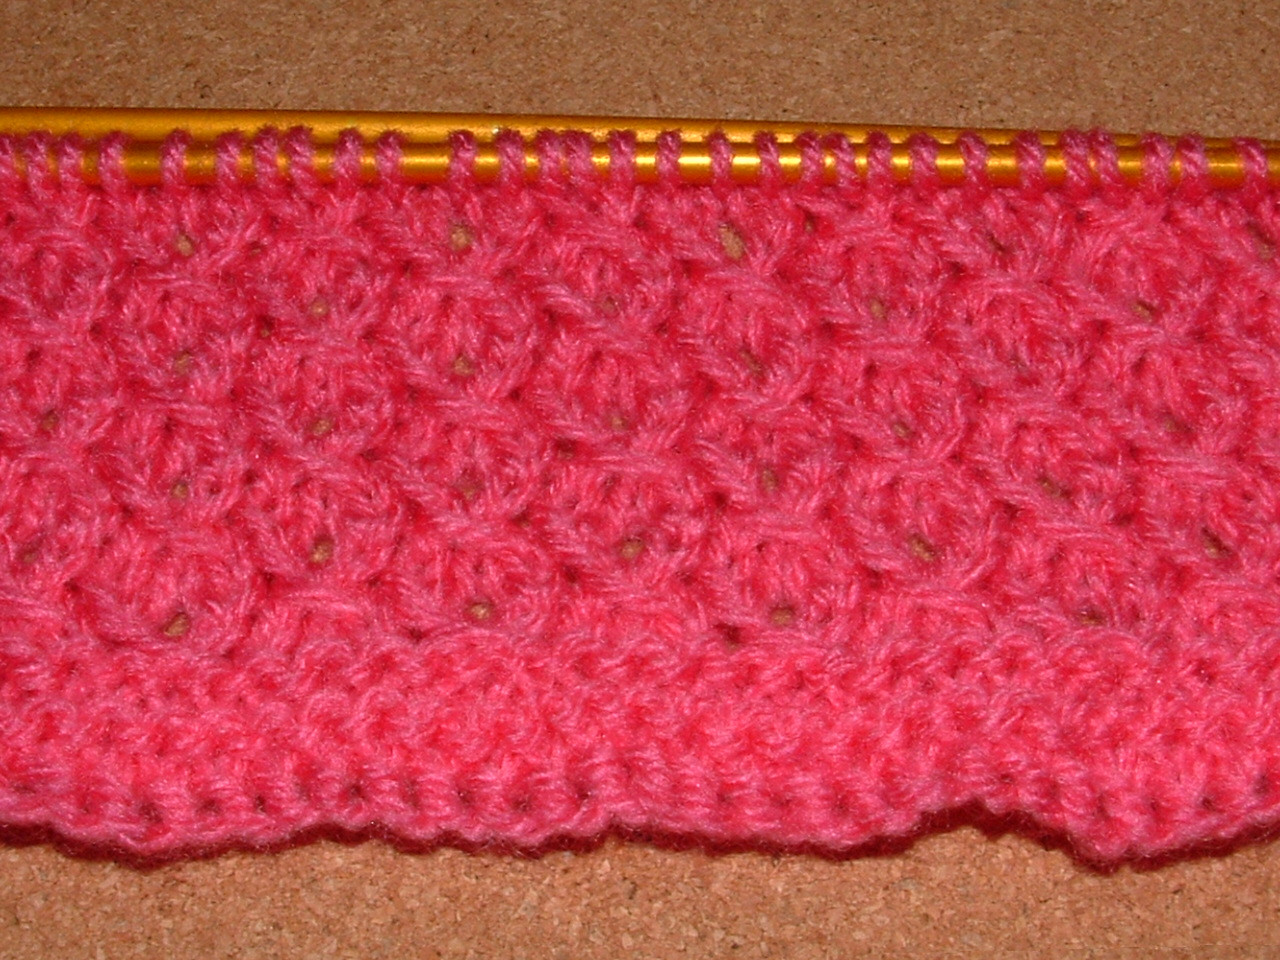 Easy Knitting Patterns Unique Knit4charities My Simple Patterns Of Superb 44 Ideas Easy Knitting Patterns